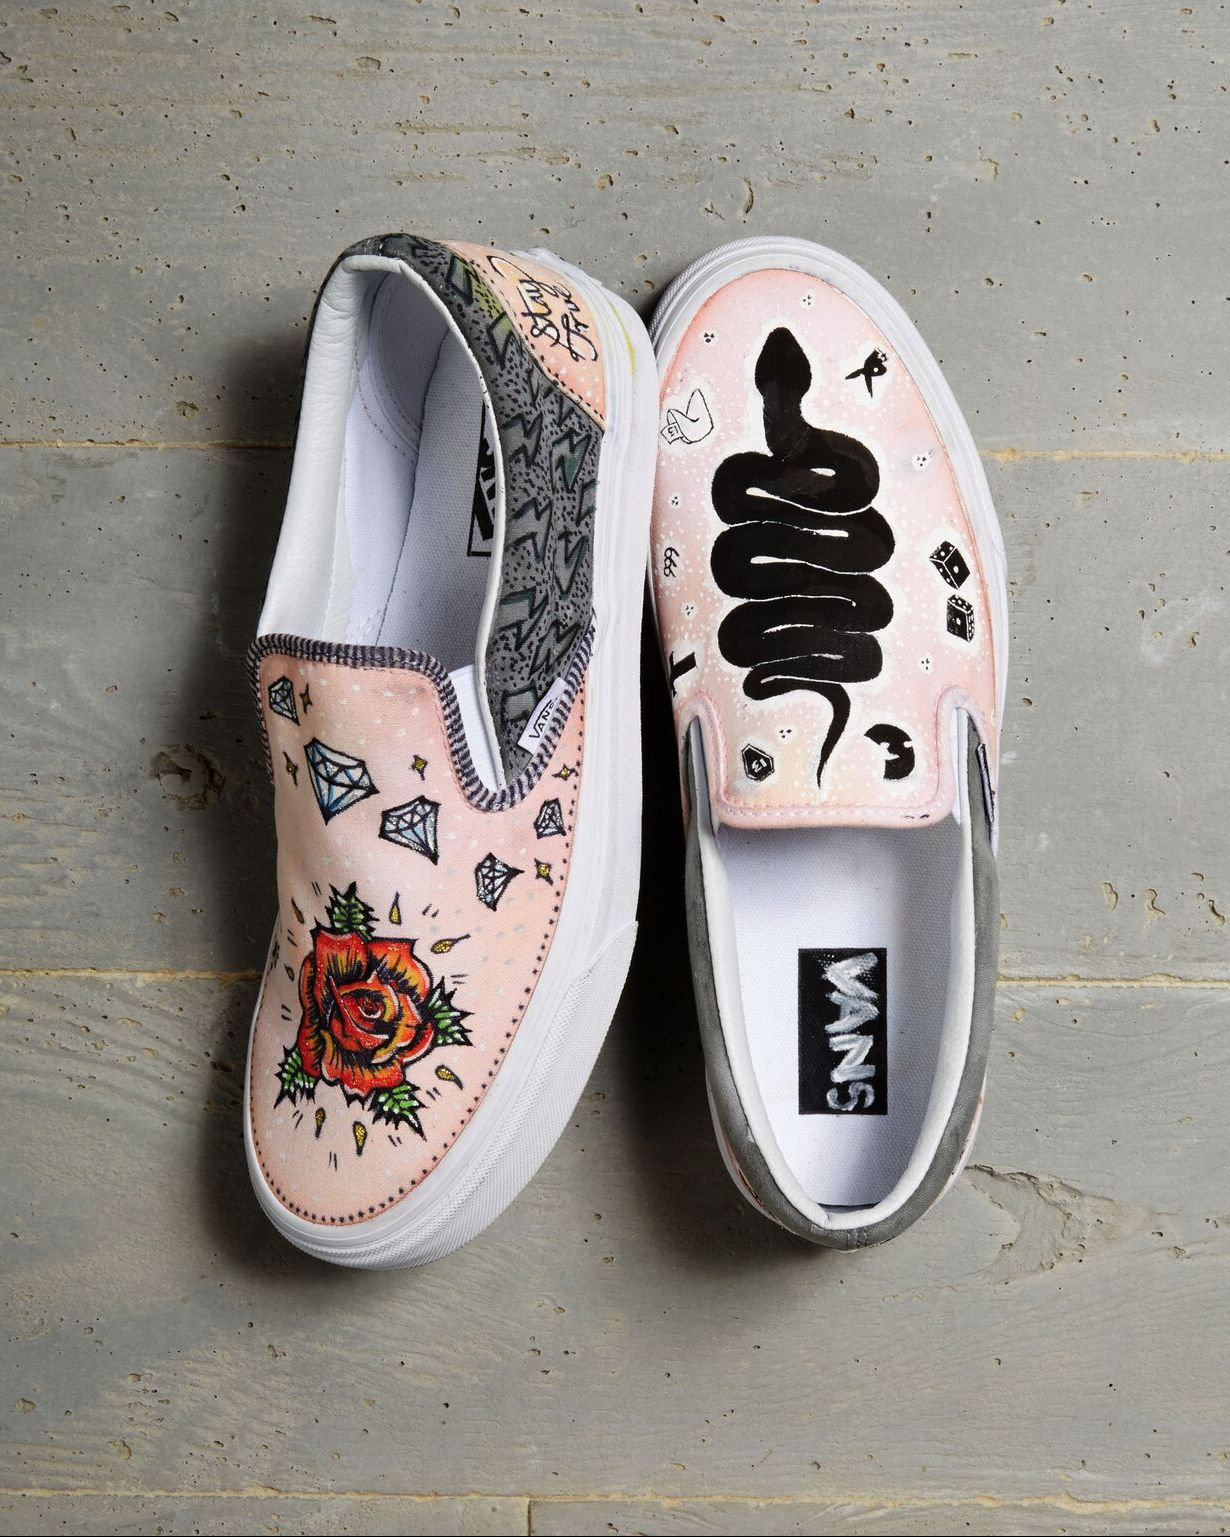 82826d3353 Shoes by 2018 Vans Custom Culture ambassador